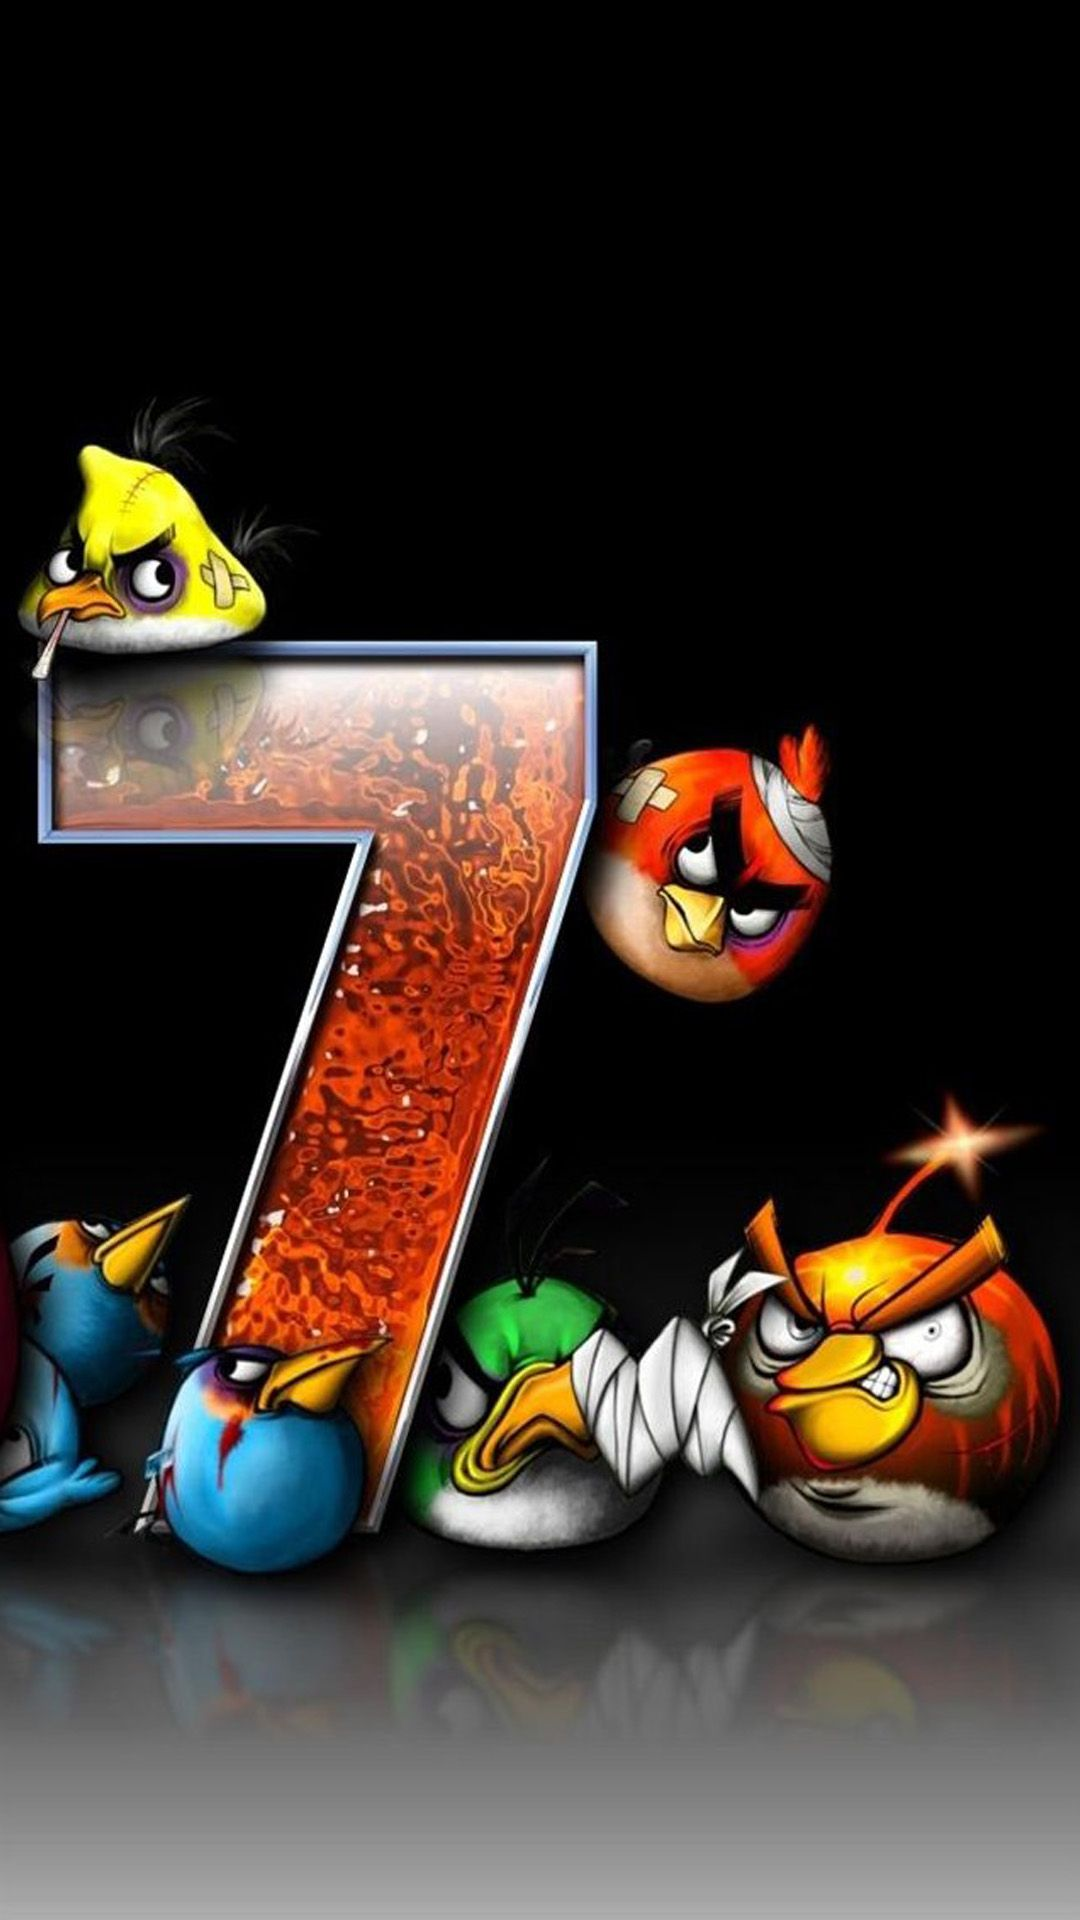 Angry Bird Game iPhone 6 plus wallpaper Ipad mini